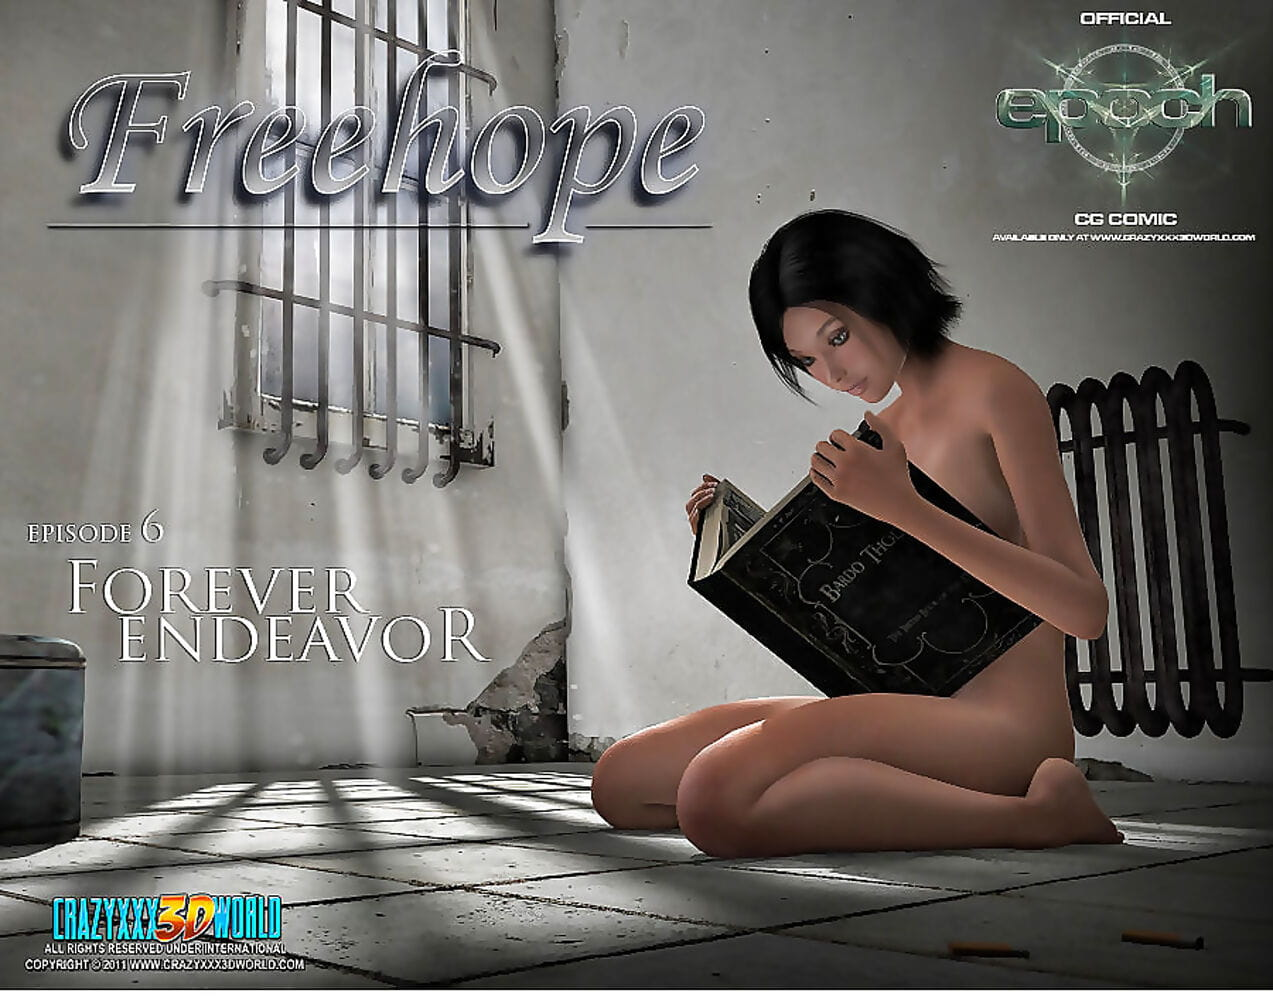 Epoch- Freehope 6